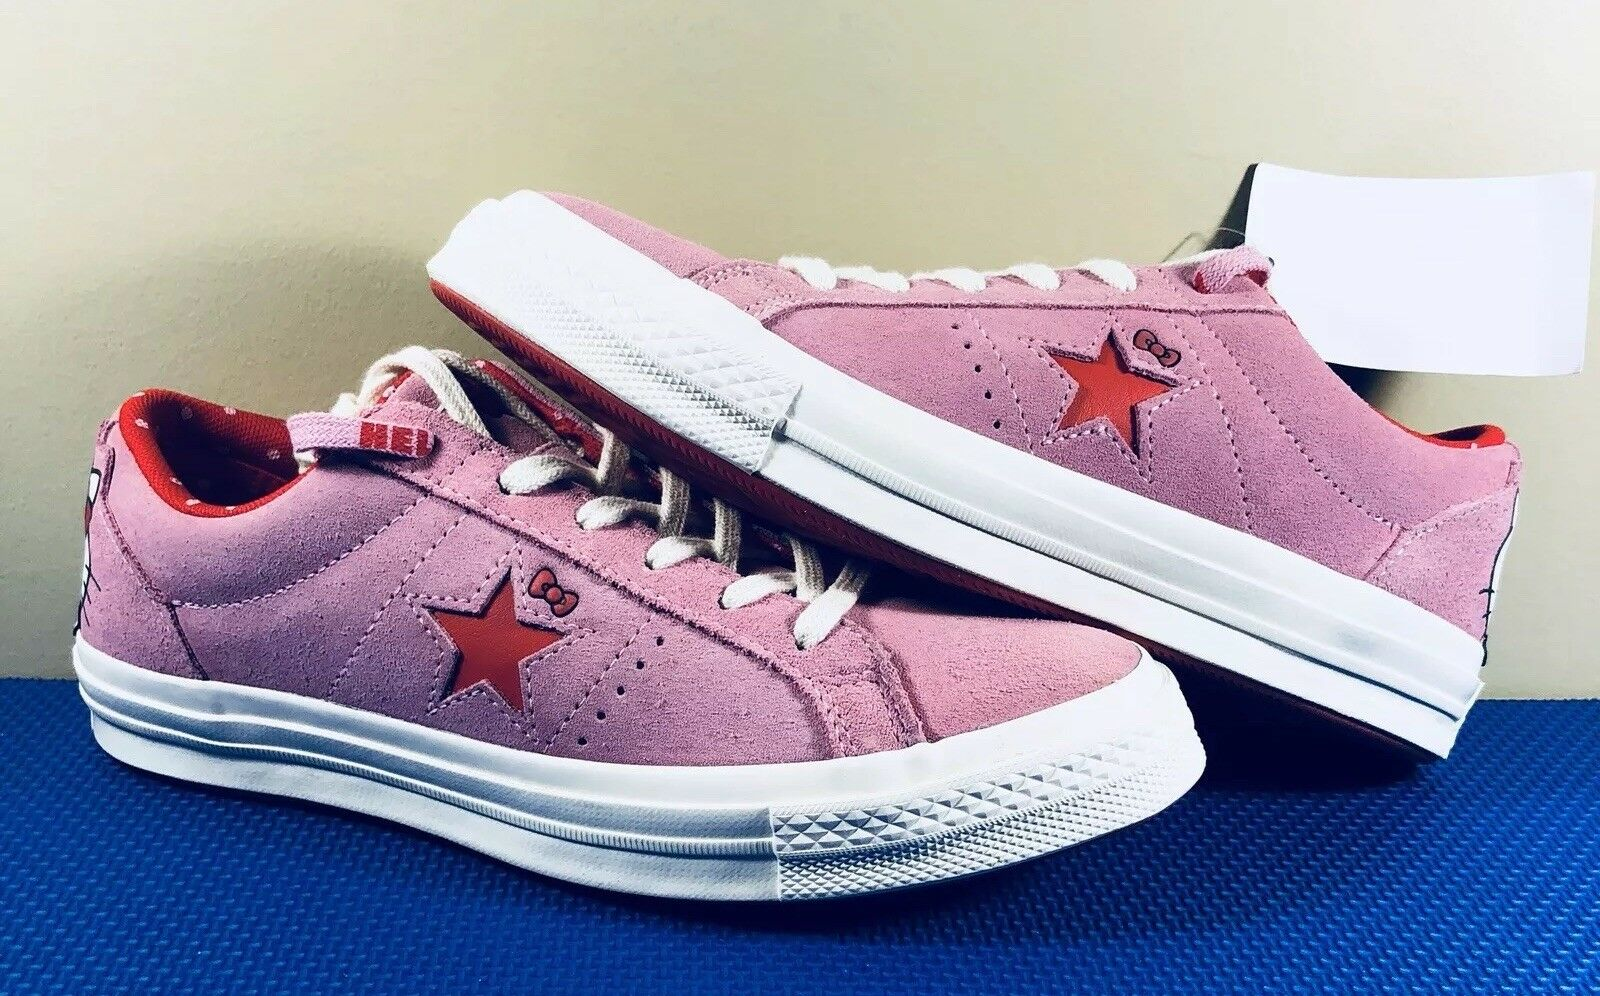 Hello Kitty x OX Converse One Star Low OX x Pink Suede Red Women's Size: 8 New DS 5fec47